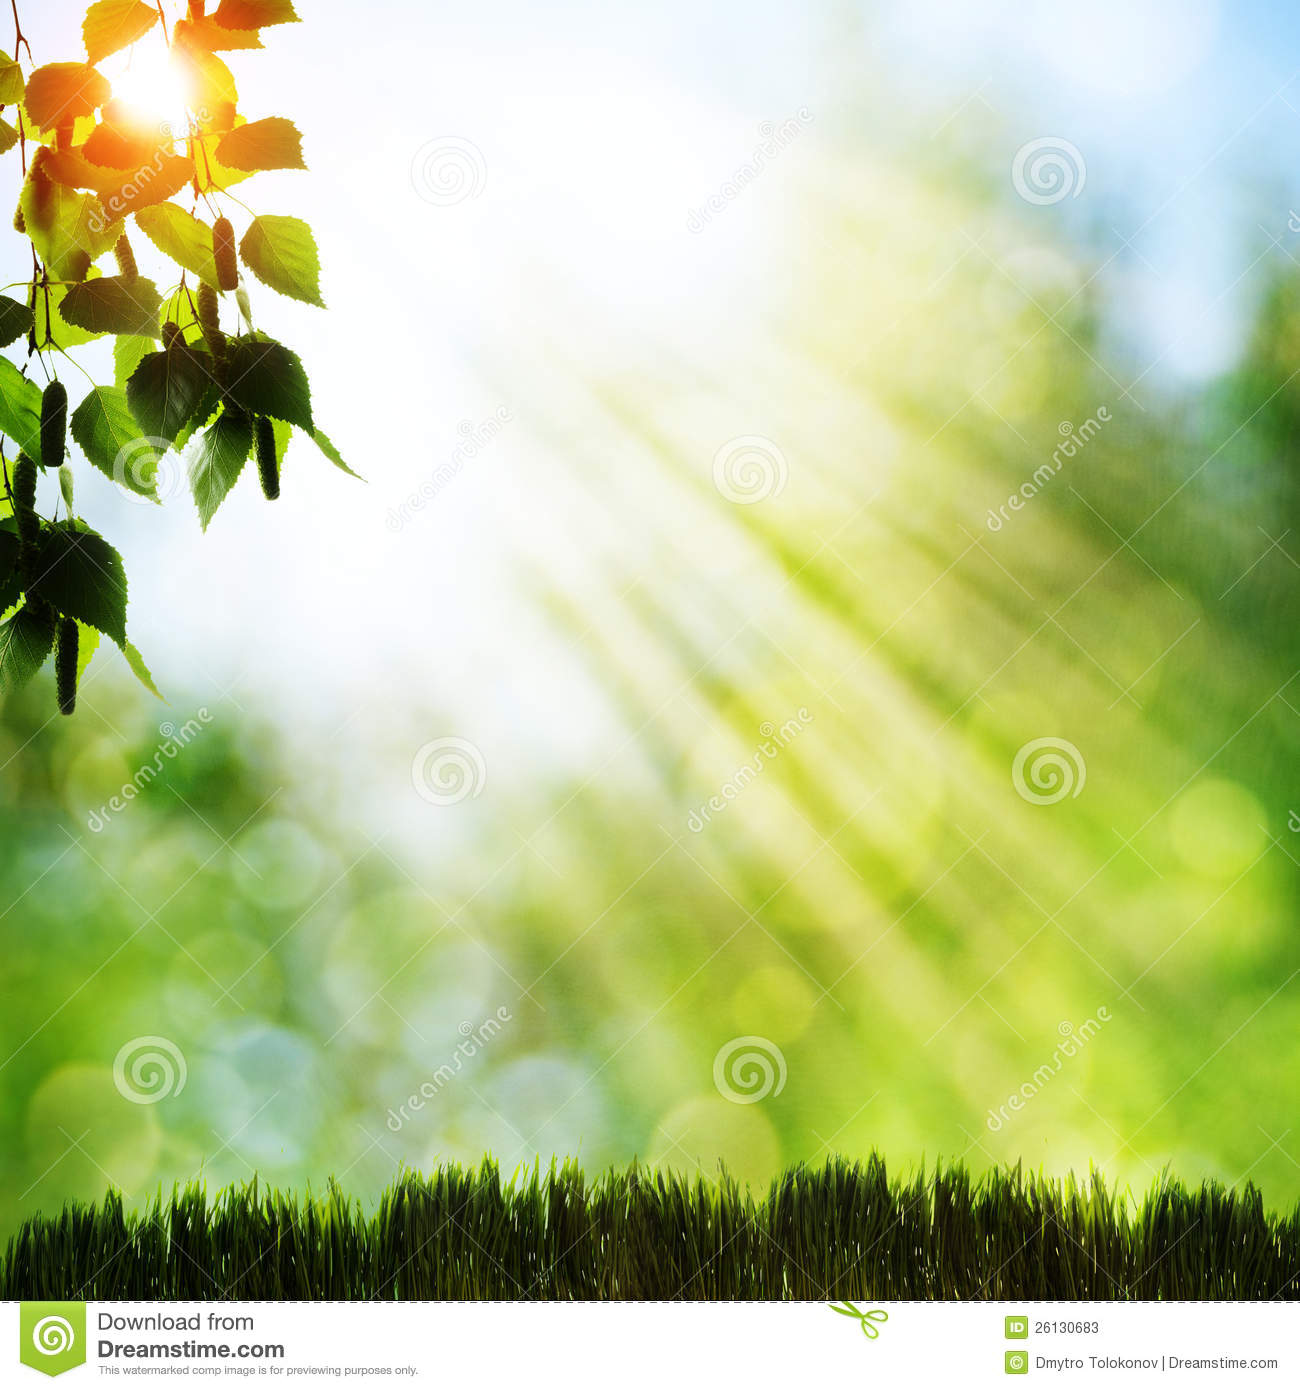 Nature Images 2mb: Abstract Natural Backgrounds Stock Image